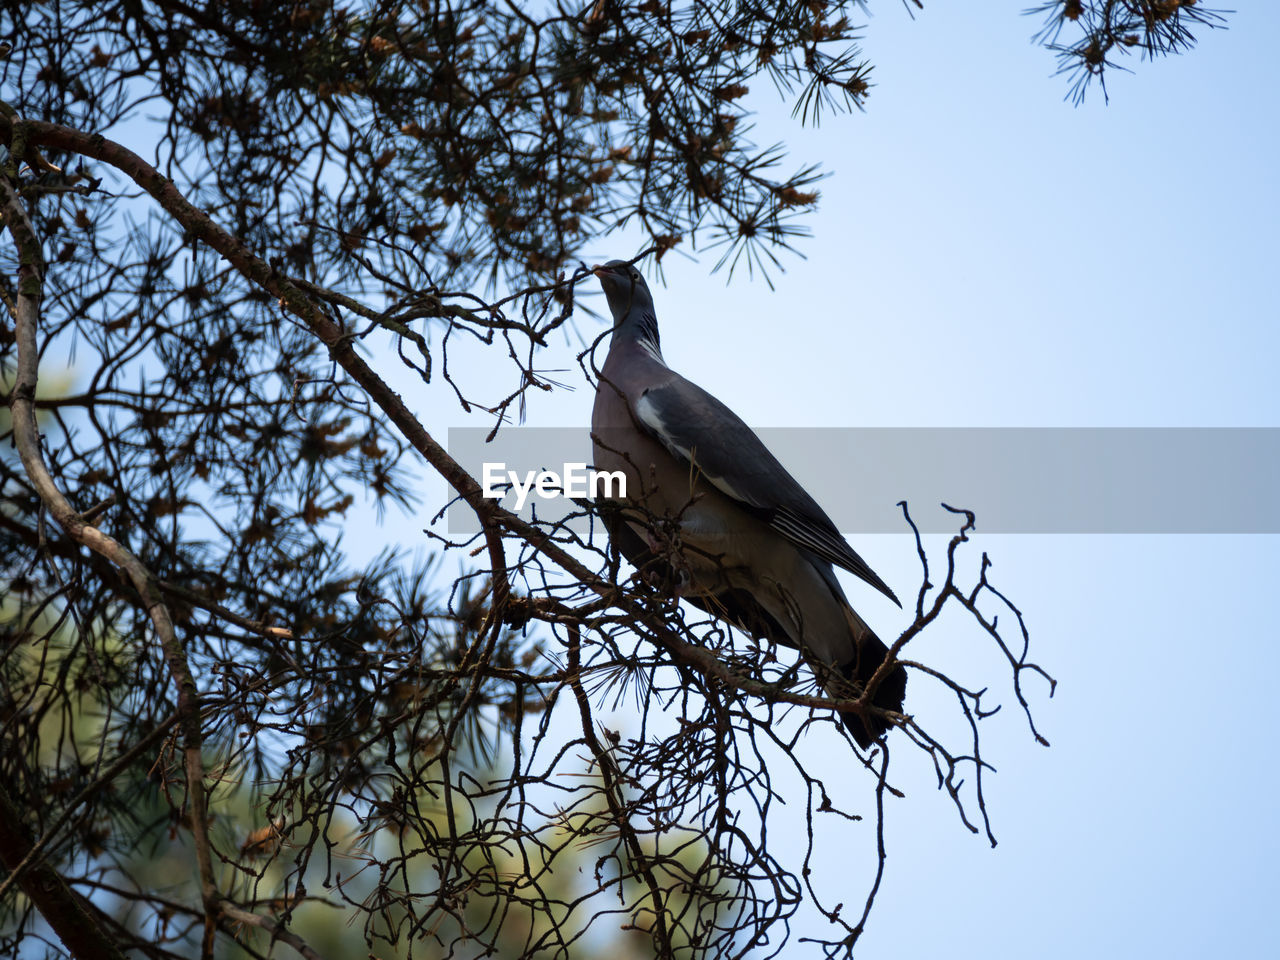 tree, bird, animals in the wild, animal themes, sky, animal wildlife, animal, plant, low angle view, vertebrate, branch, one animal, nature, perching, no people, clear sky, day, outdoors, bare tree, growth